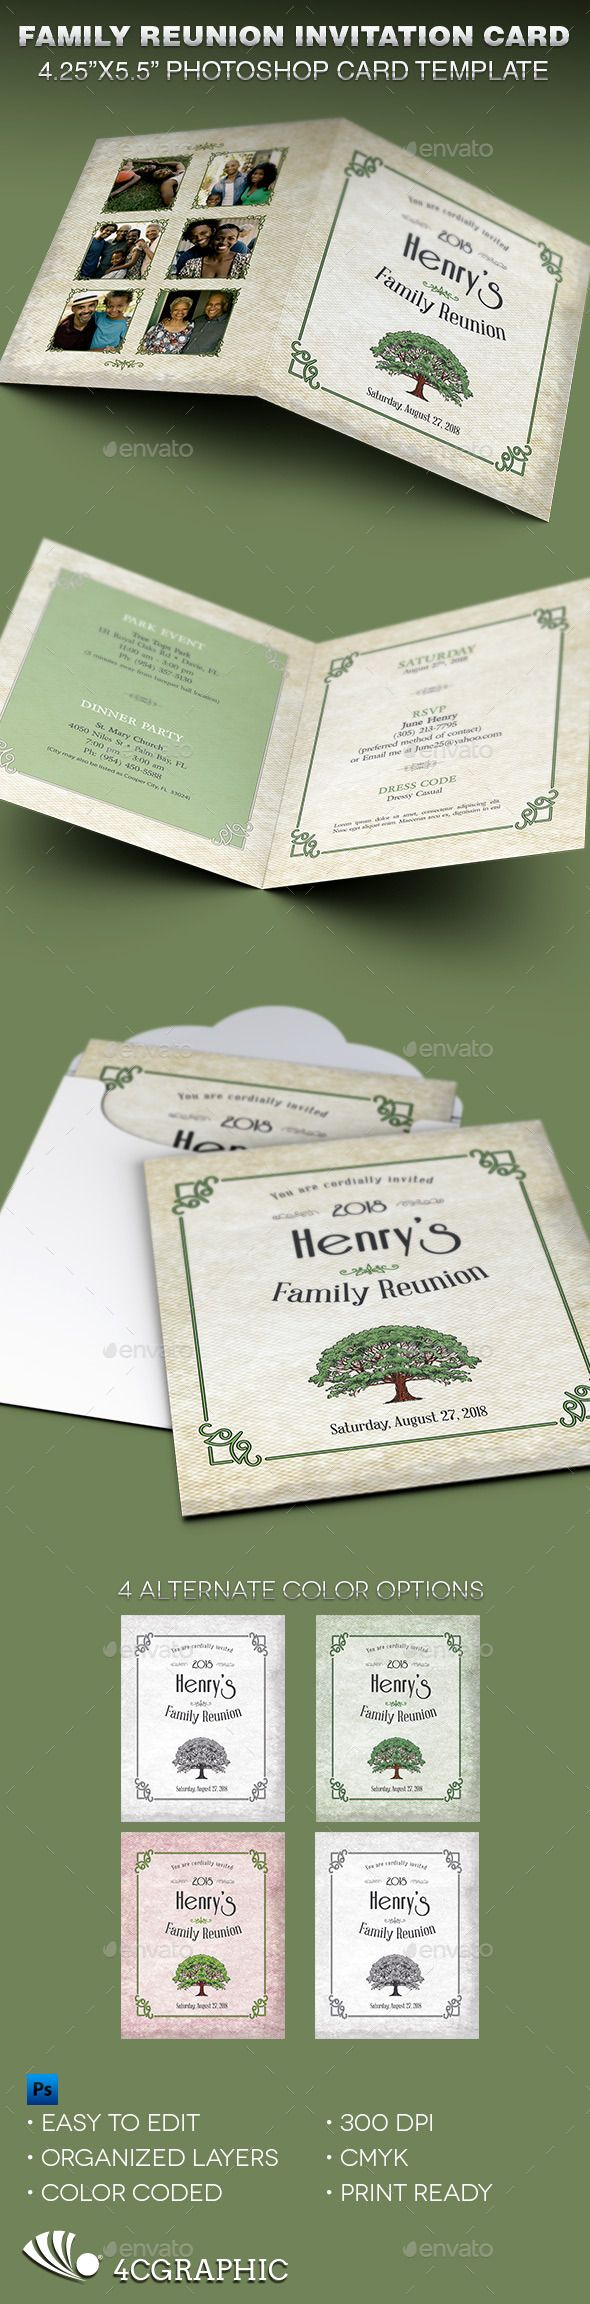 Family Reunion Invitation Card Template Family Reunion